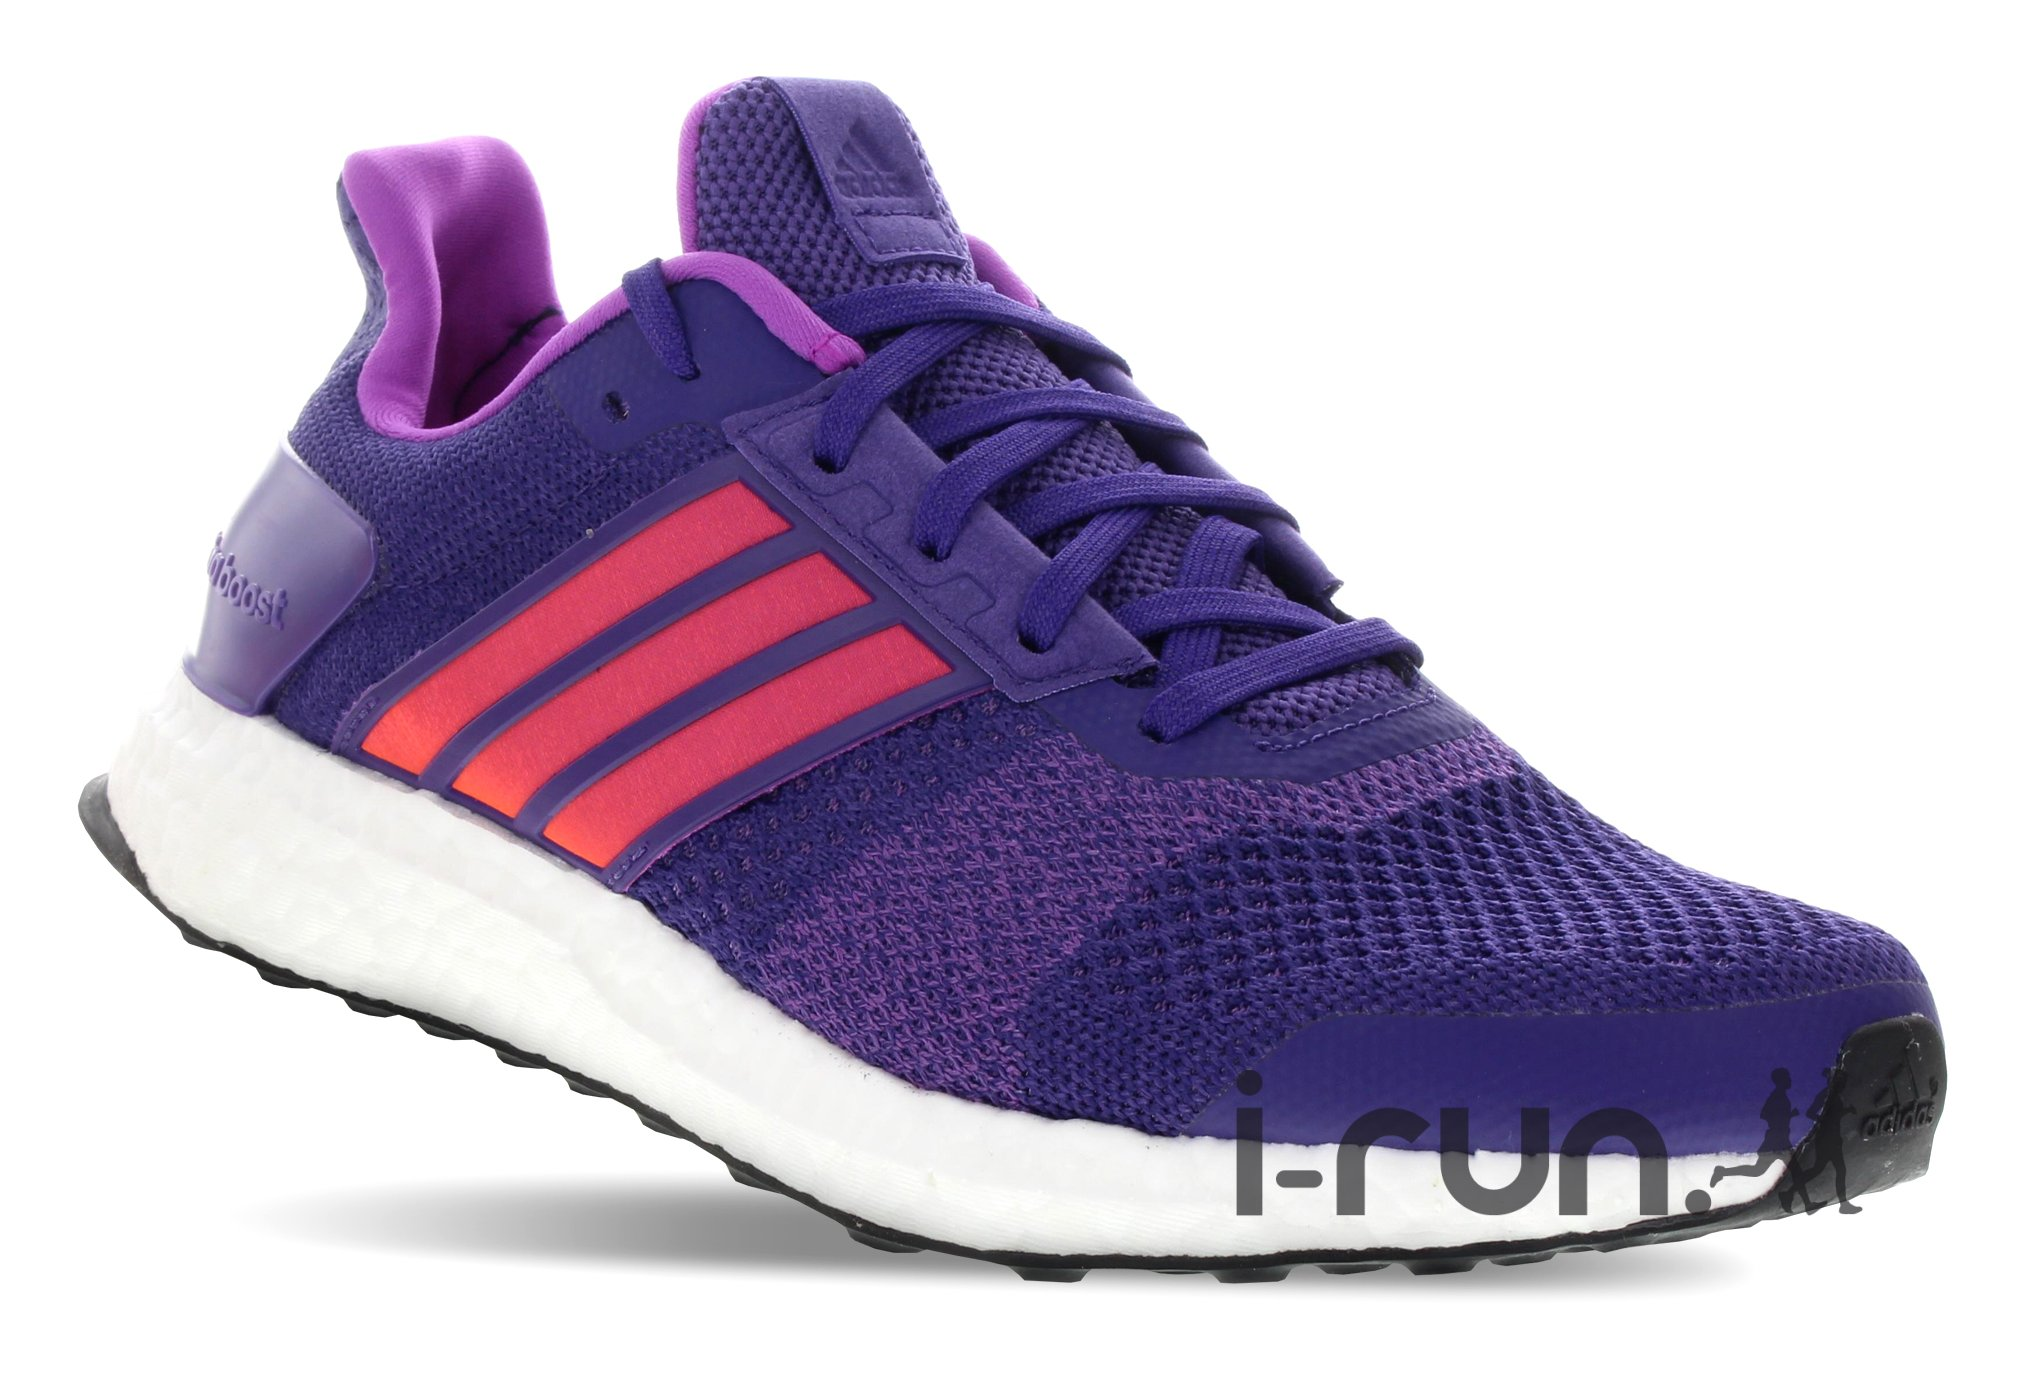 cyclo randonneurs saint chamonais adidas ultra boost st w chaussures running femme. Black Bedroom Furniture Sets. Home Design Ideas